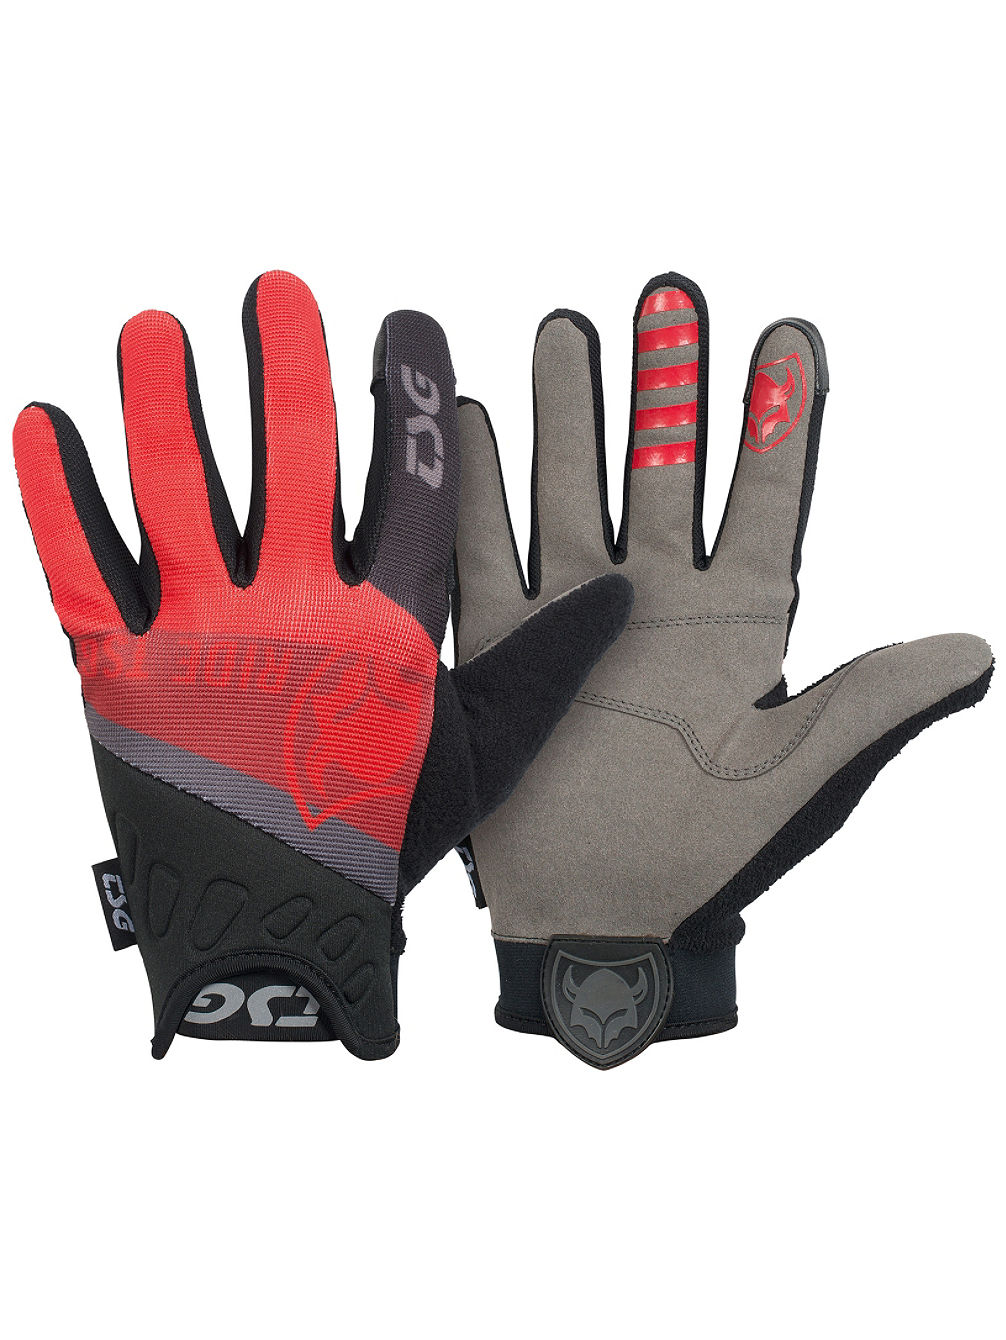 Trail Bike Gloves